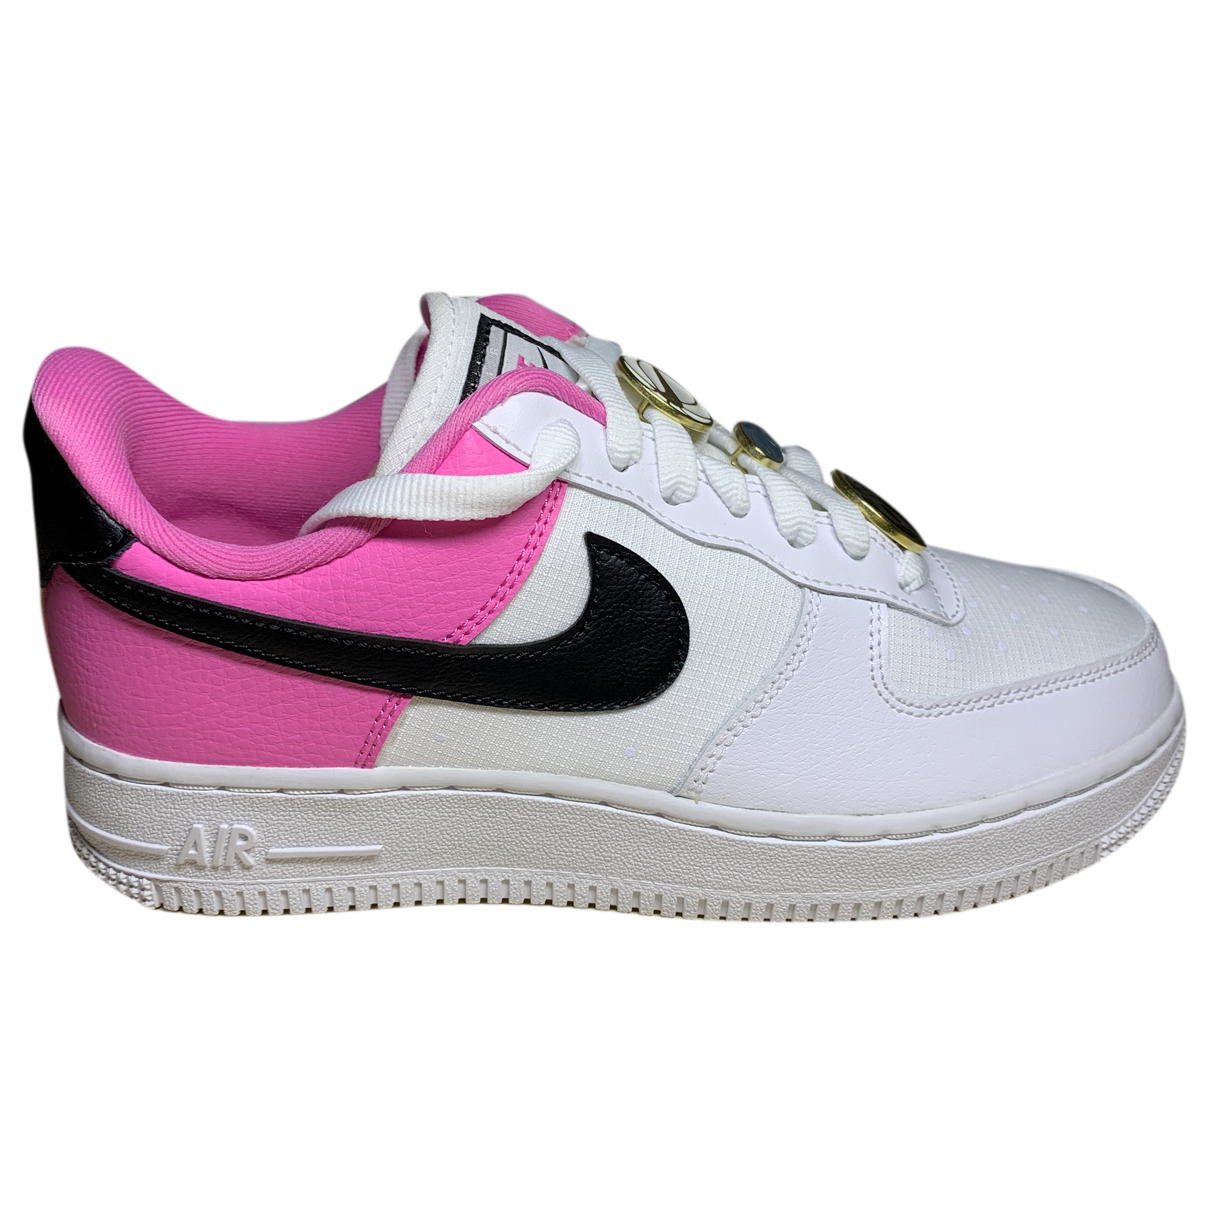 Nike - Baskets Air Force 1 pour femme - rose